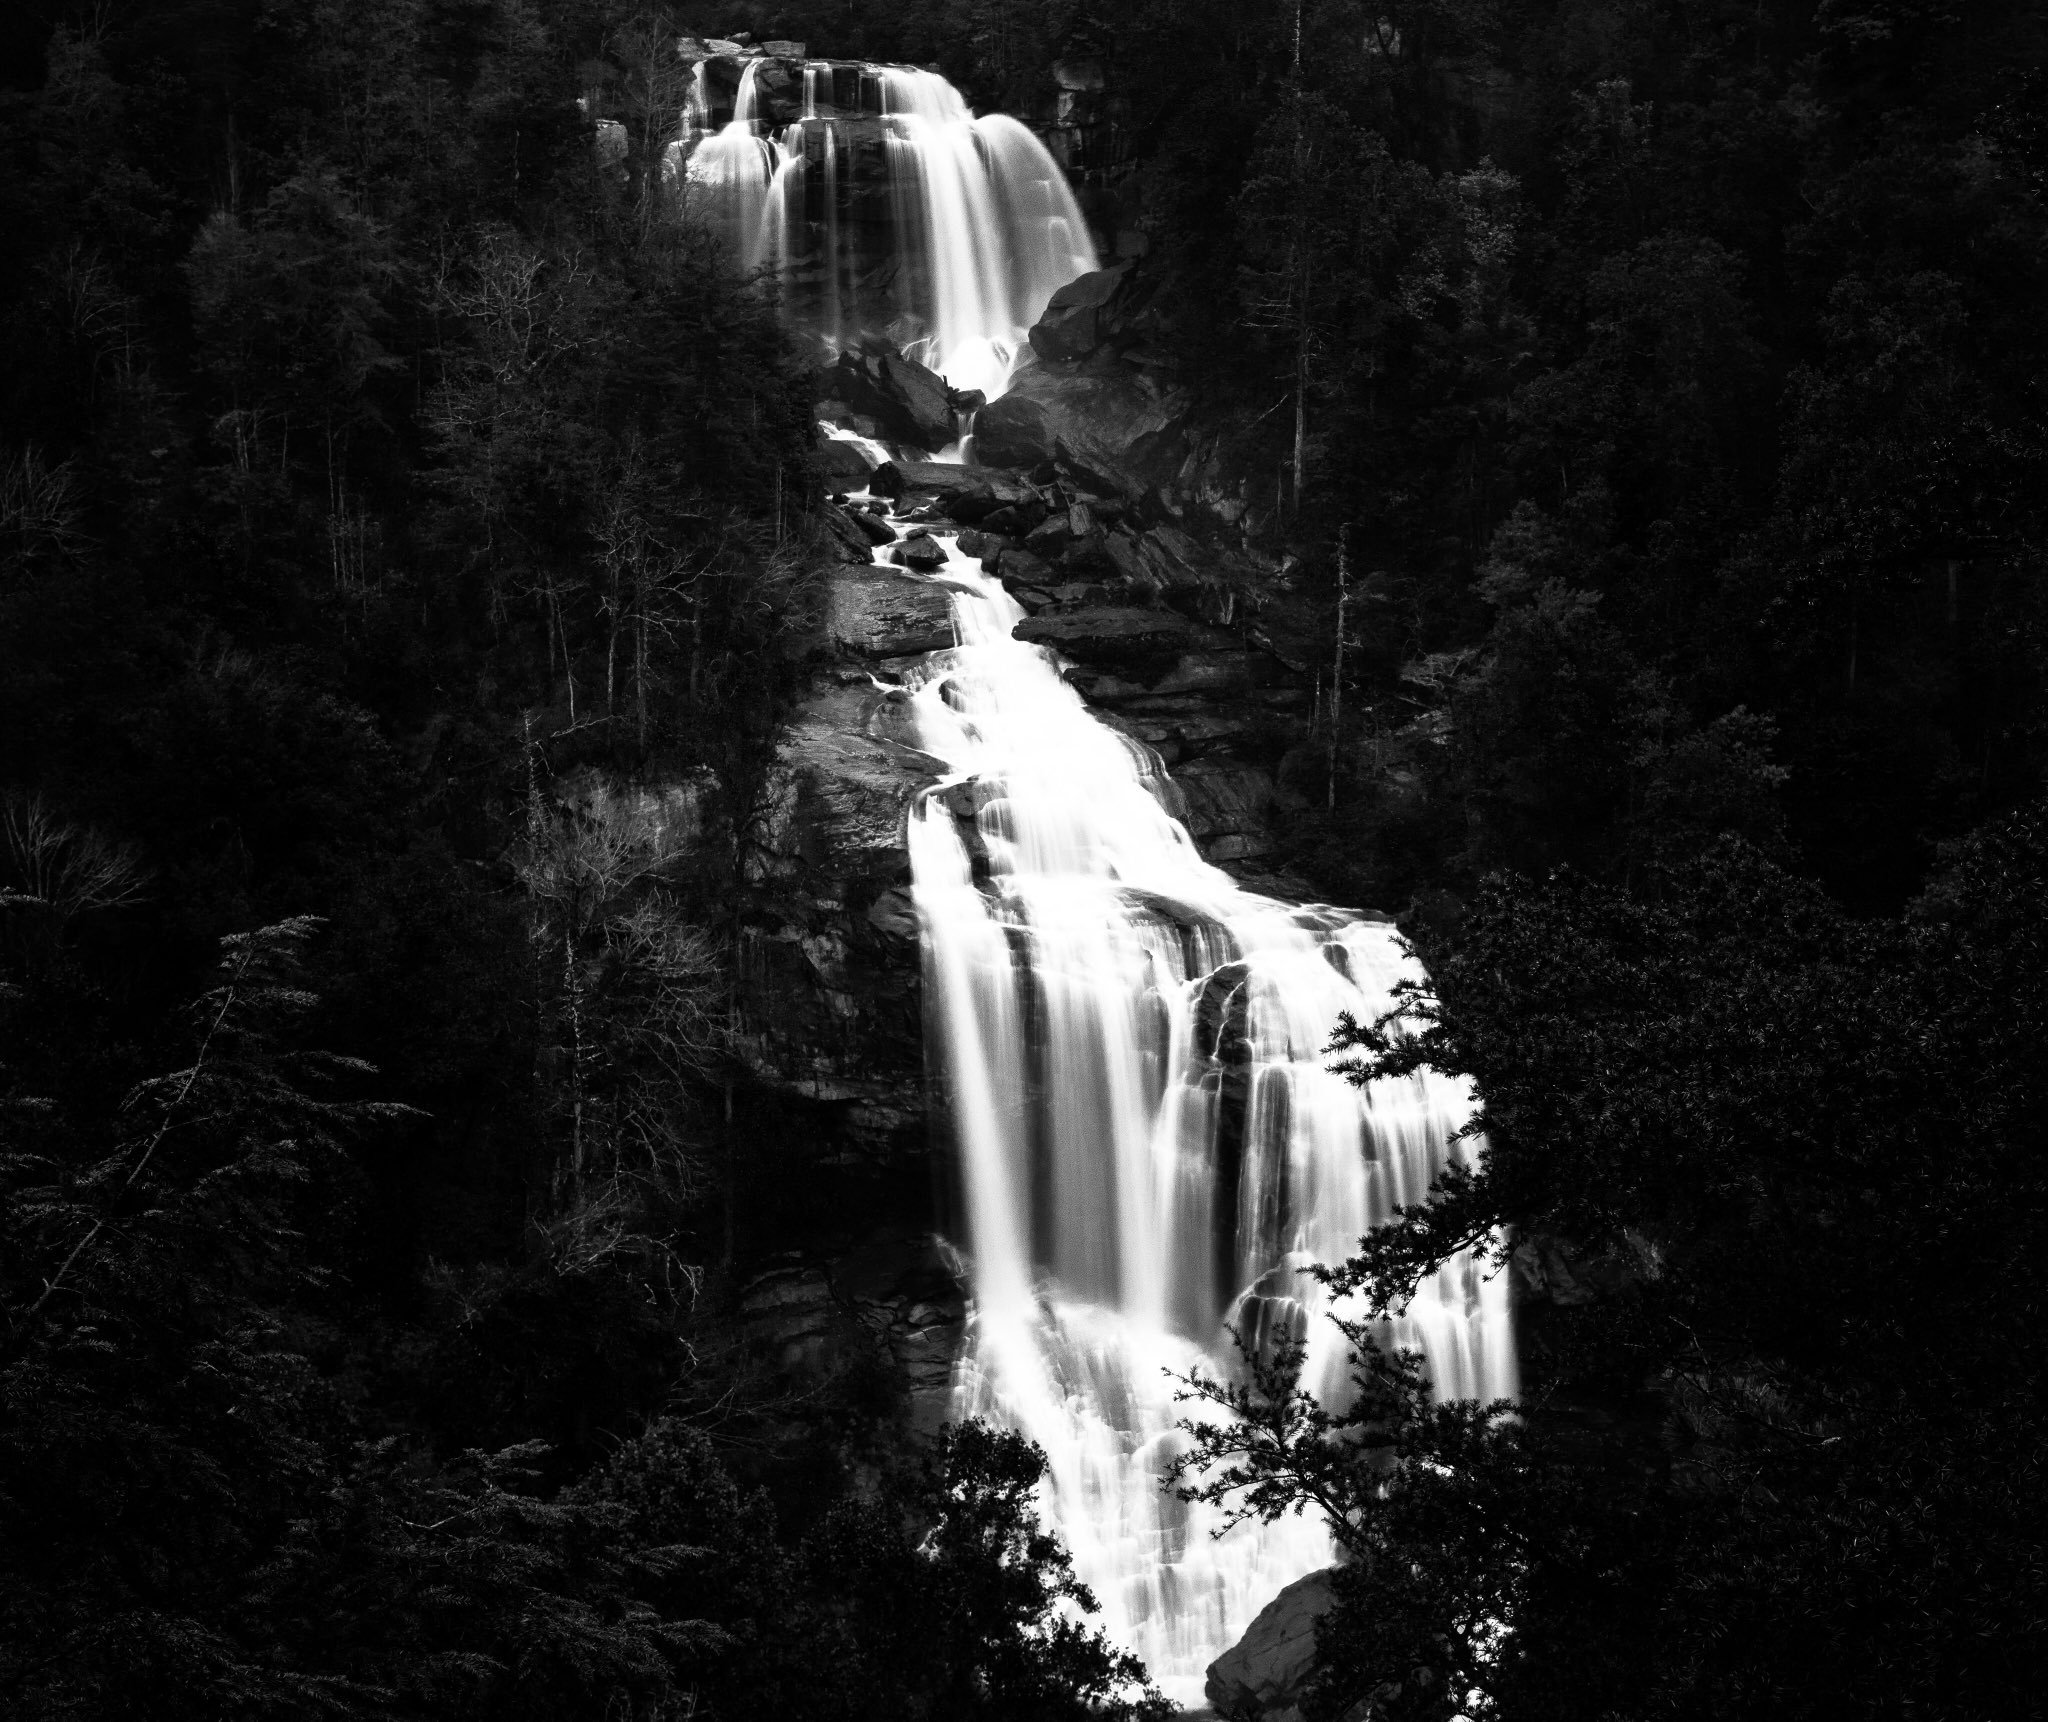 black_and_white_landscape_photography_8.jpg